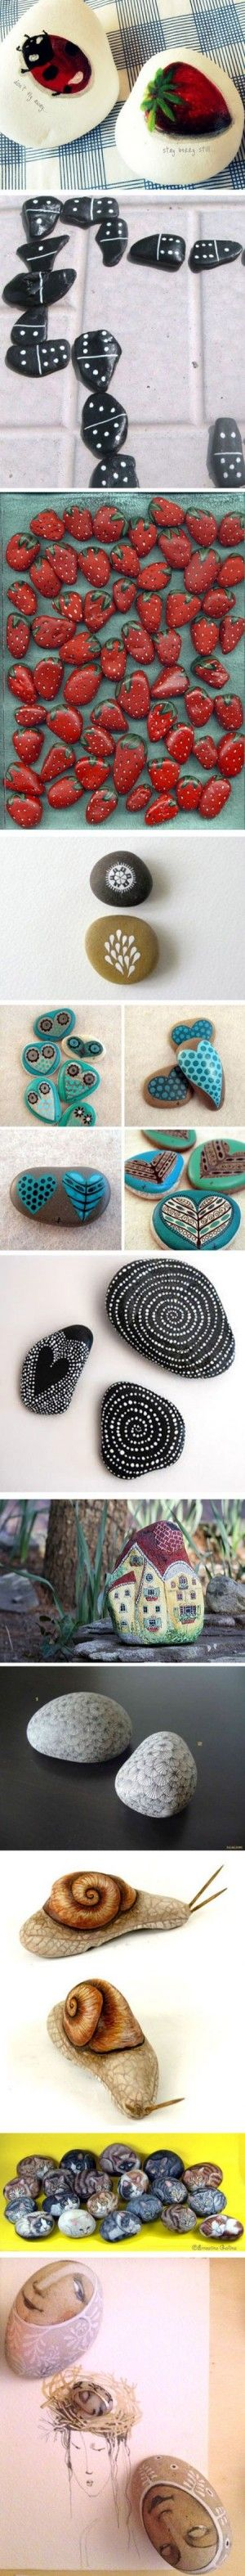 DIY Painted Stones Ideas  if you and Mom go for a walk, or you go camping...look for smooth stones and dry sticks!